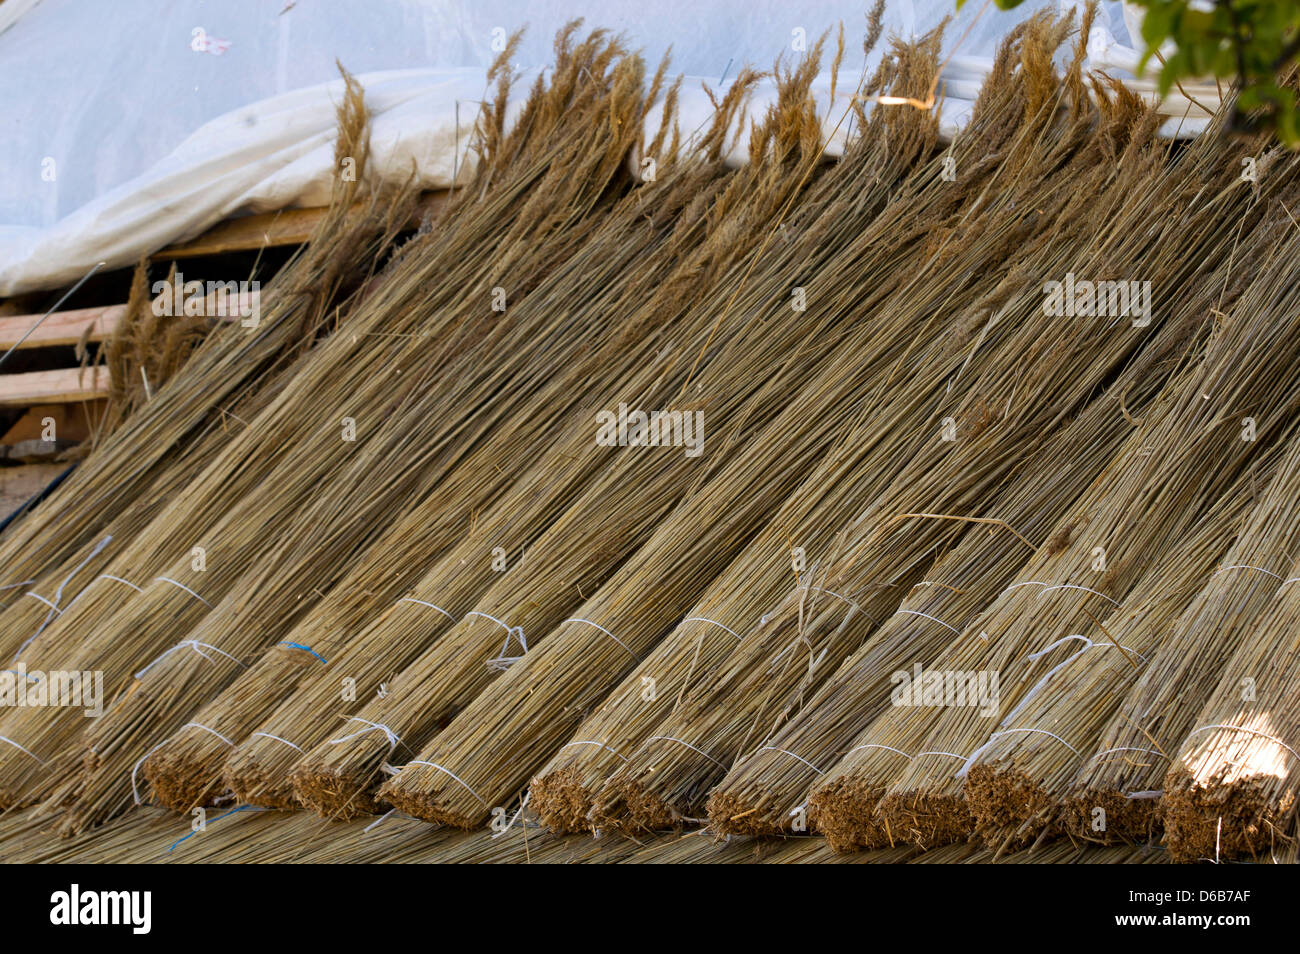 Rolls of reeds for a thatched roof sit on thge roof of an old farmhouse in Hoben near Wismar, Germany, 13 August - Stock Image